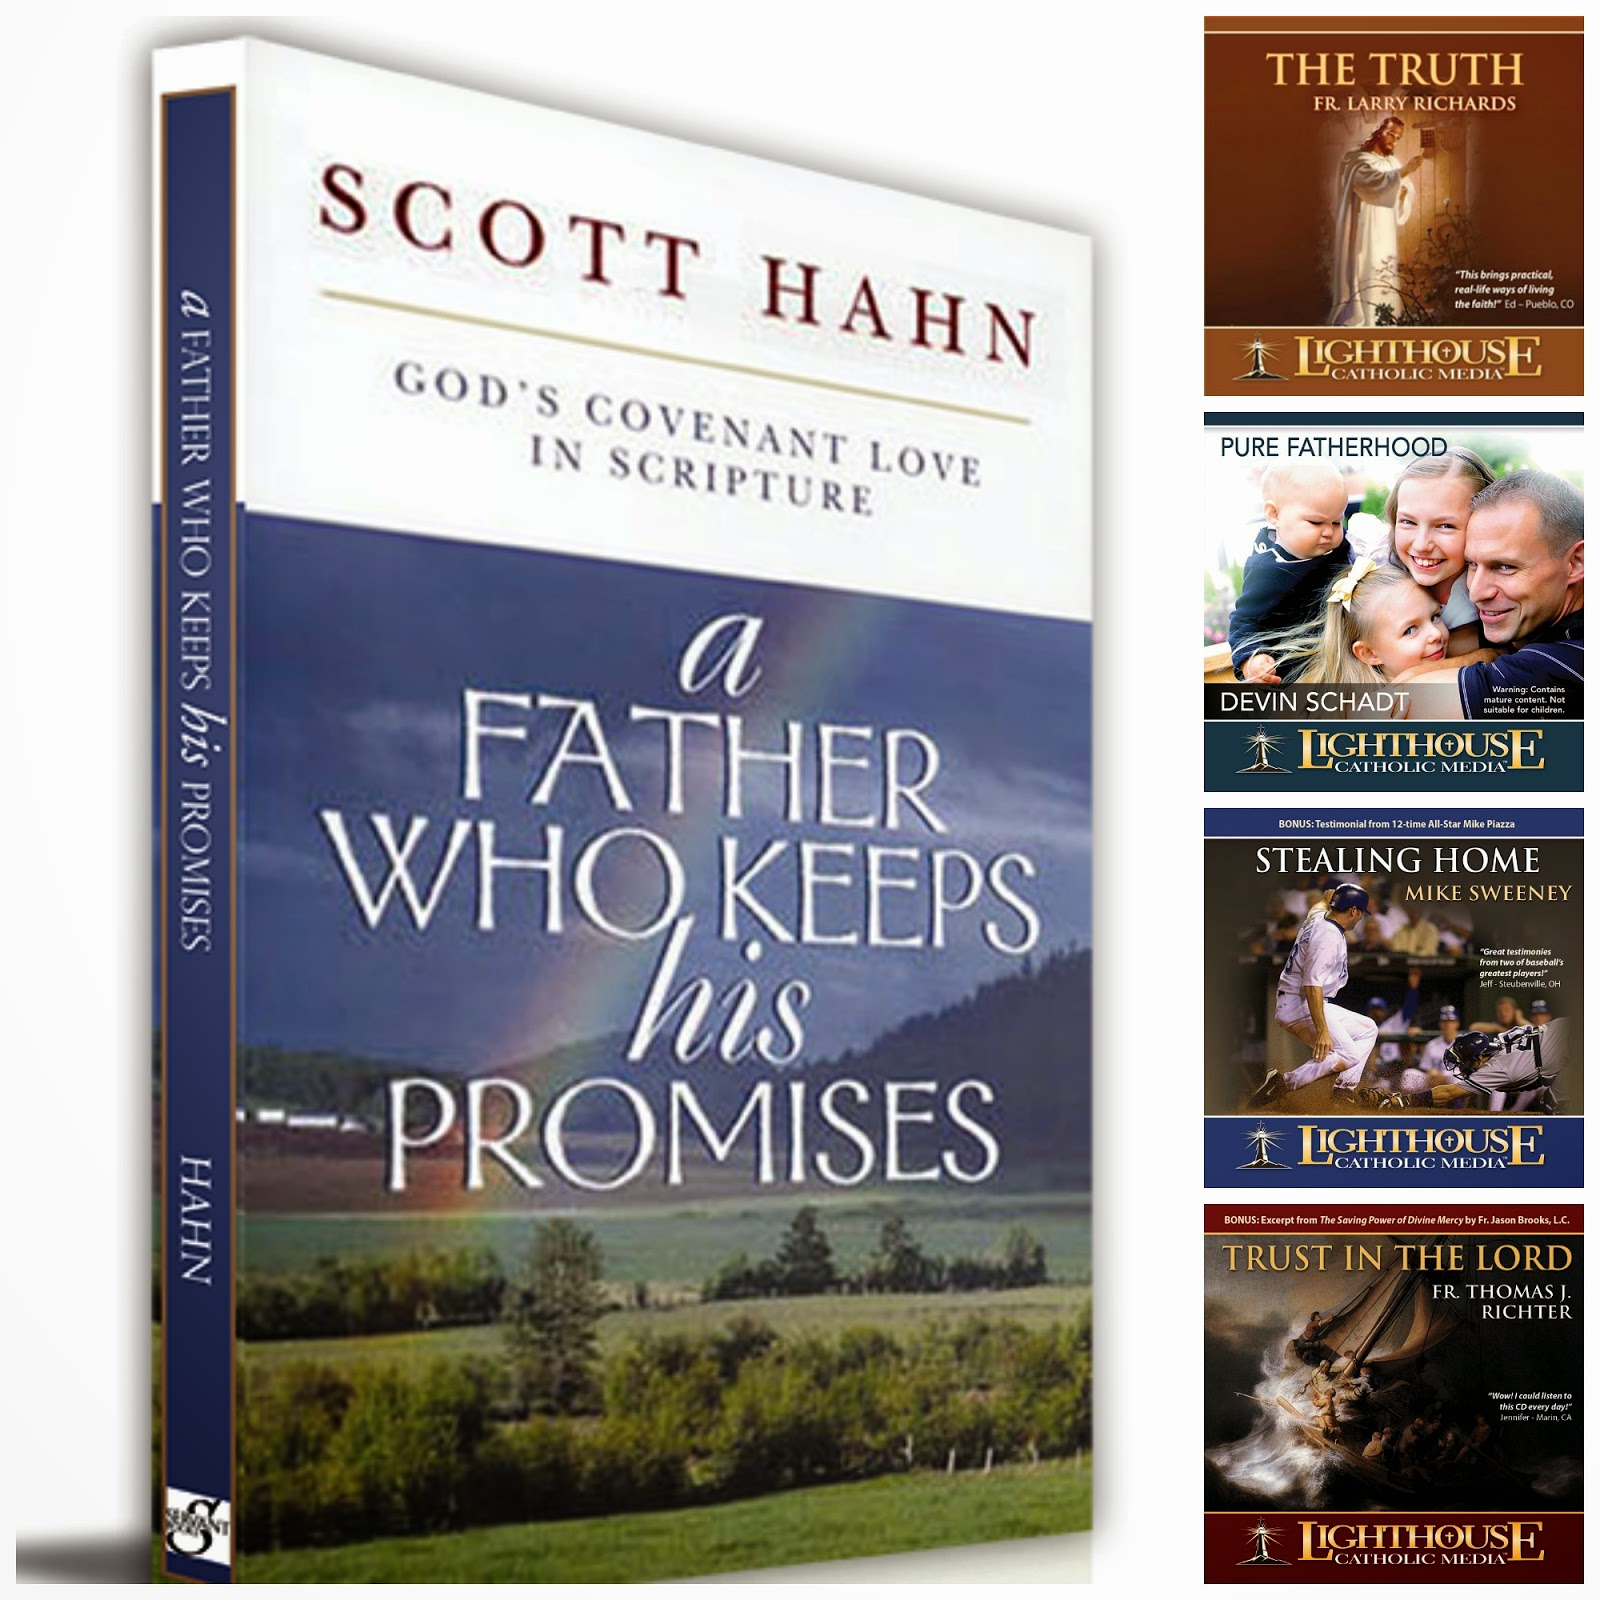 http://saints365.blogspot.com/2014/06/lighthouse-catholic-media-fathers-day.html